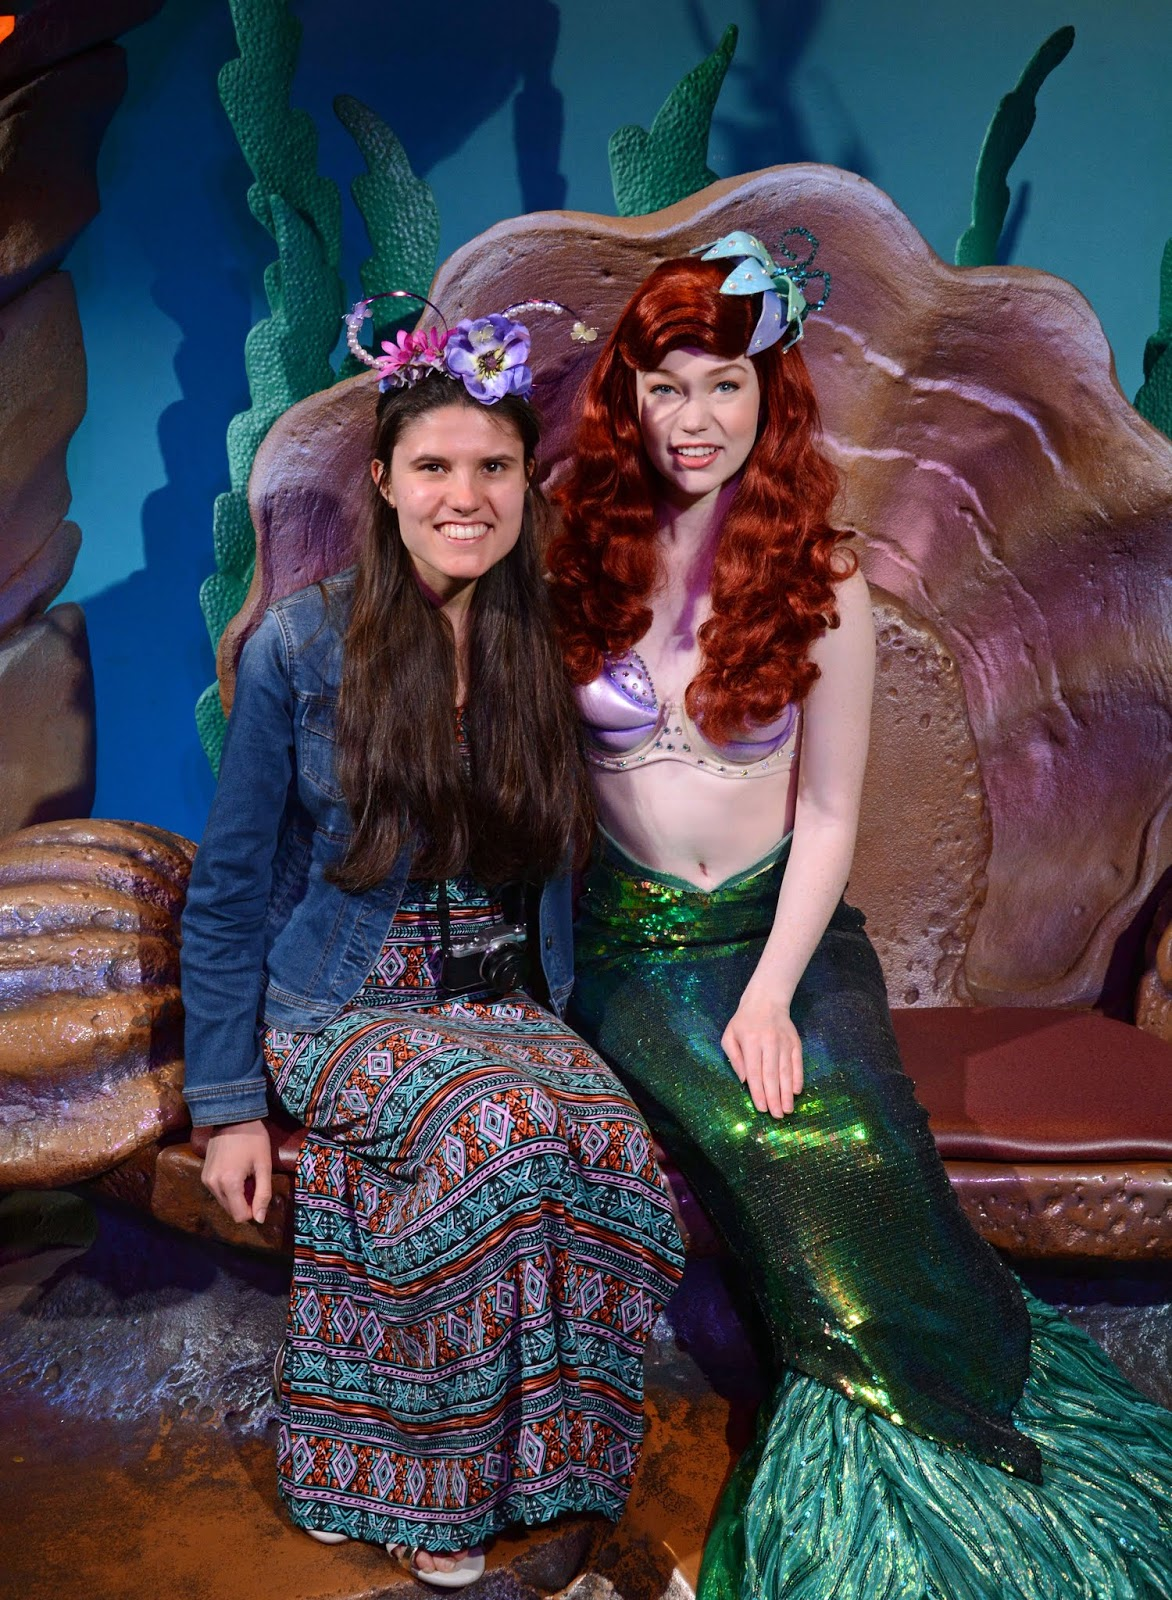 Meeting Princess Ariel at Disney's Magic Kingdom on our 4 park challenge day